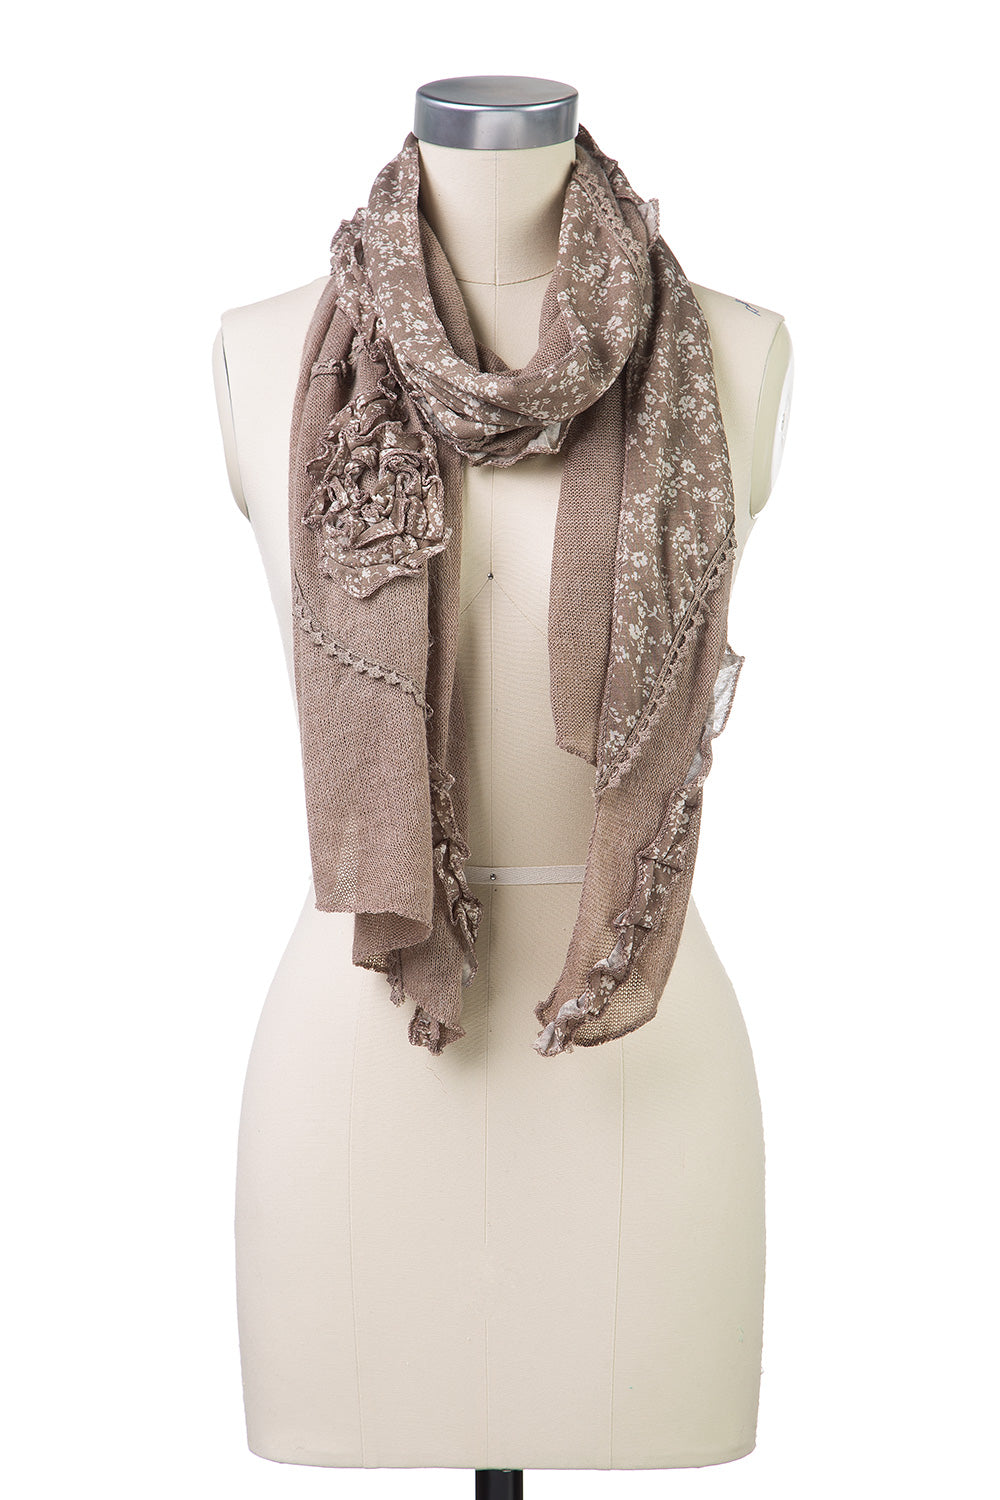 Type 2 Ruffled Rose Scarf in Taupe